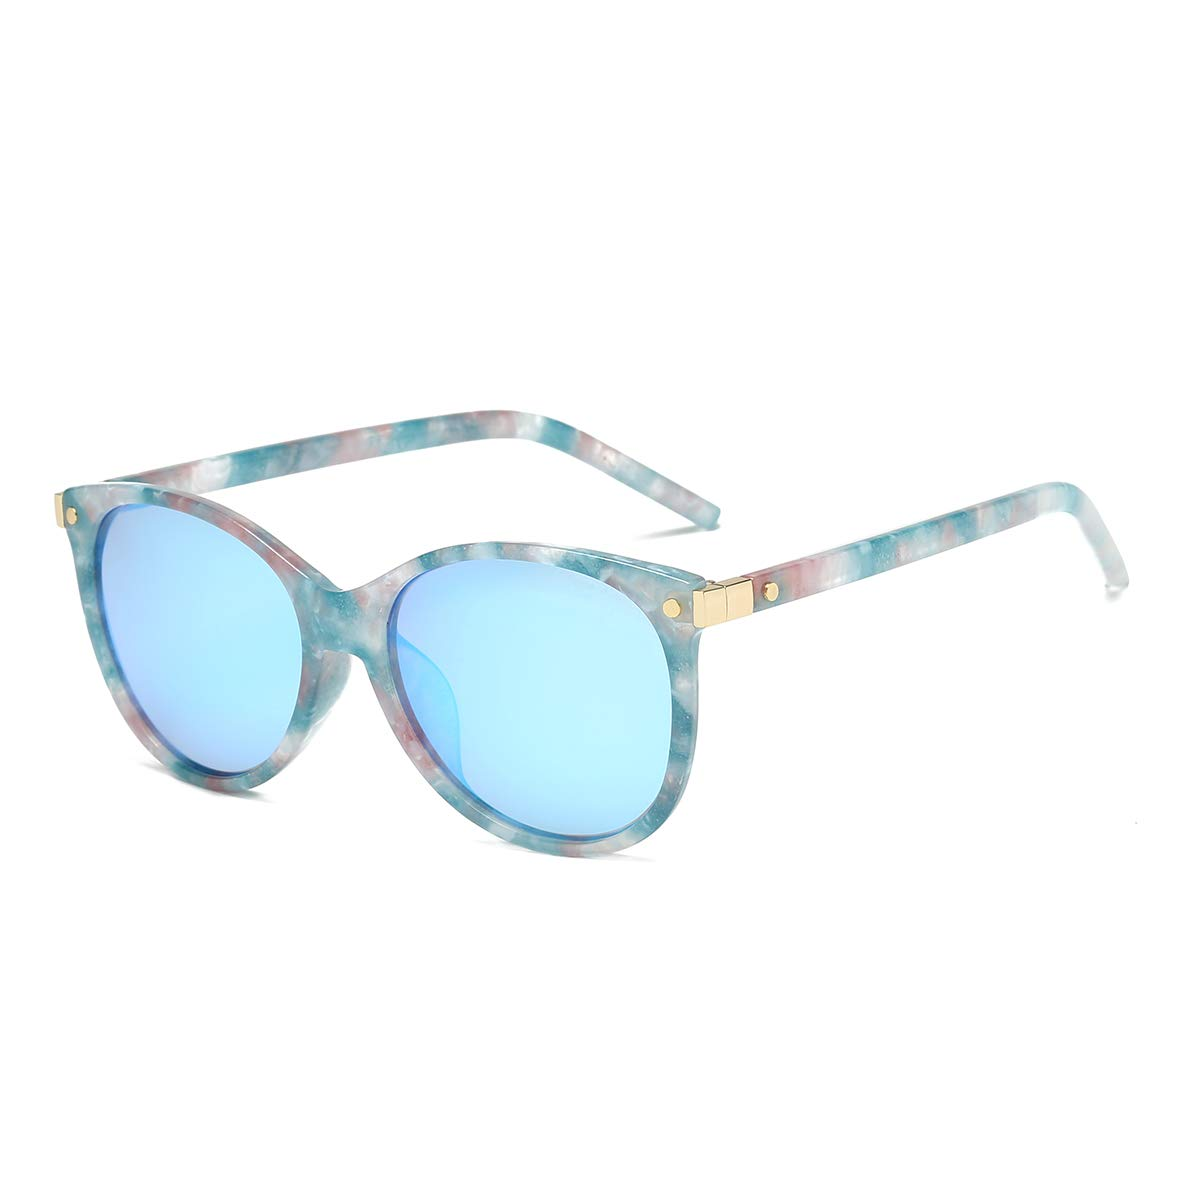 CHEREEKI Women/'s Sunglasses Classic Vintage Fashion Oval Sunglasses for Women with UV400 Protection and Mirrored Lens